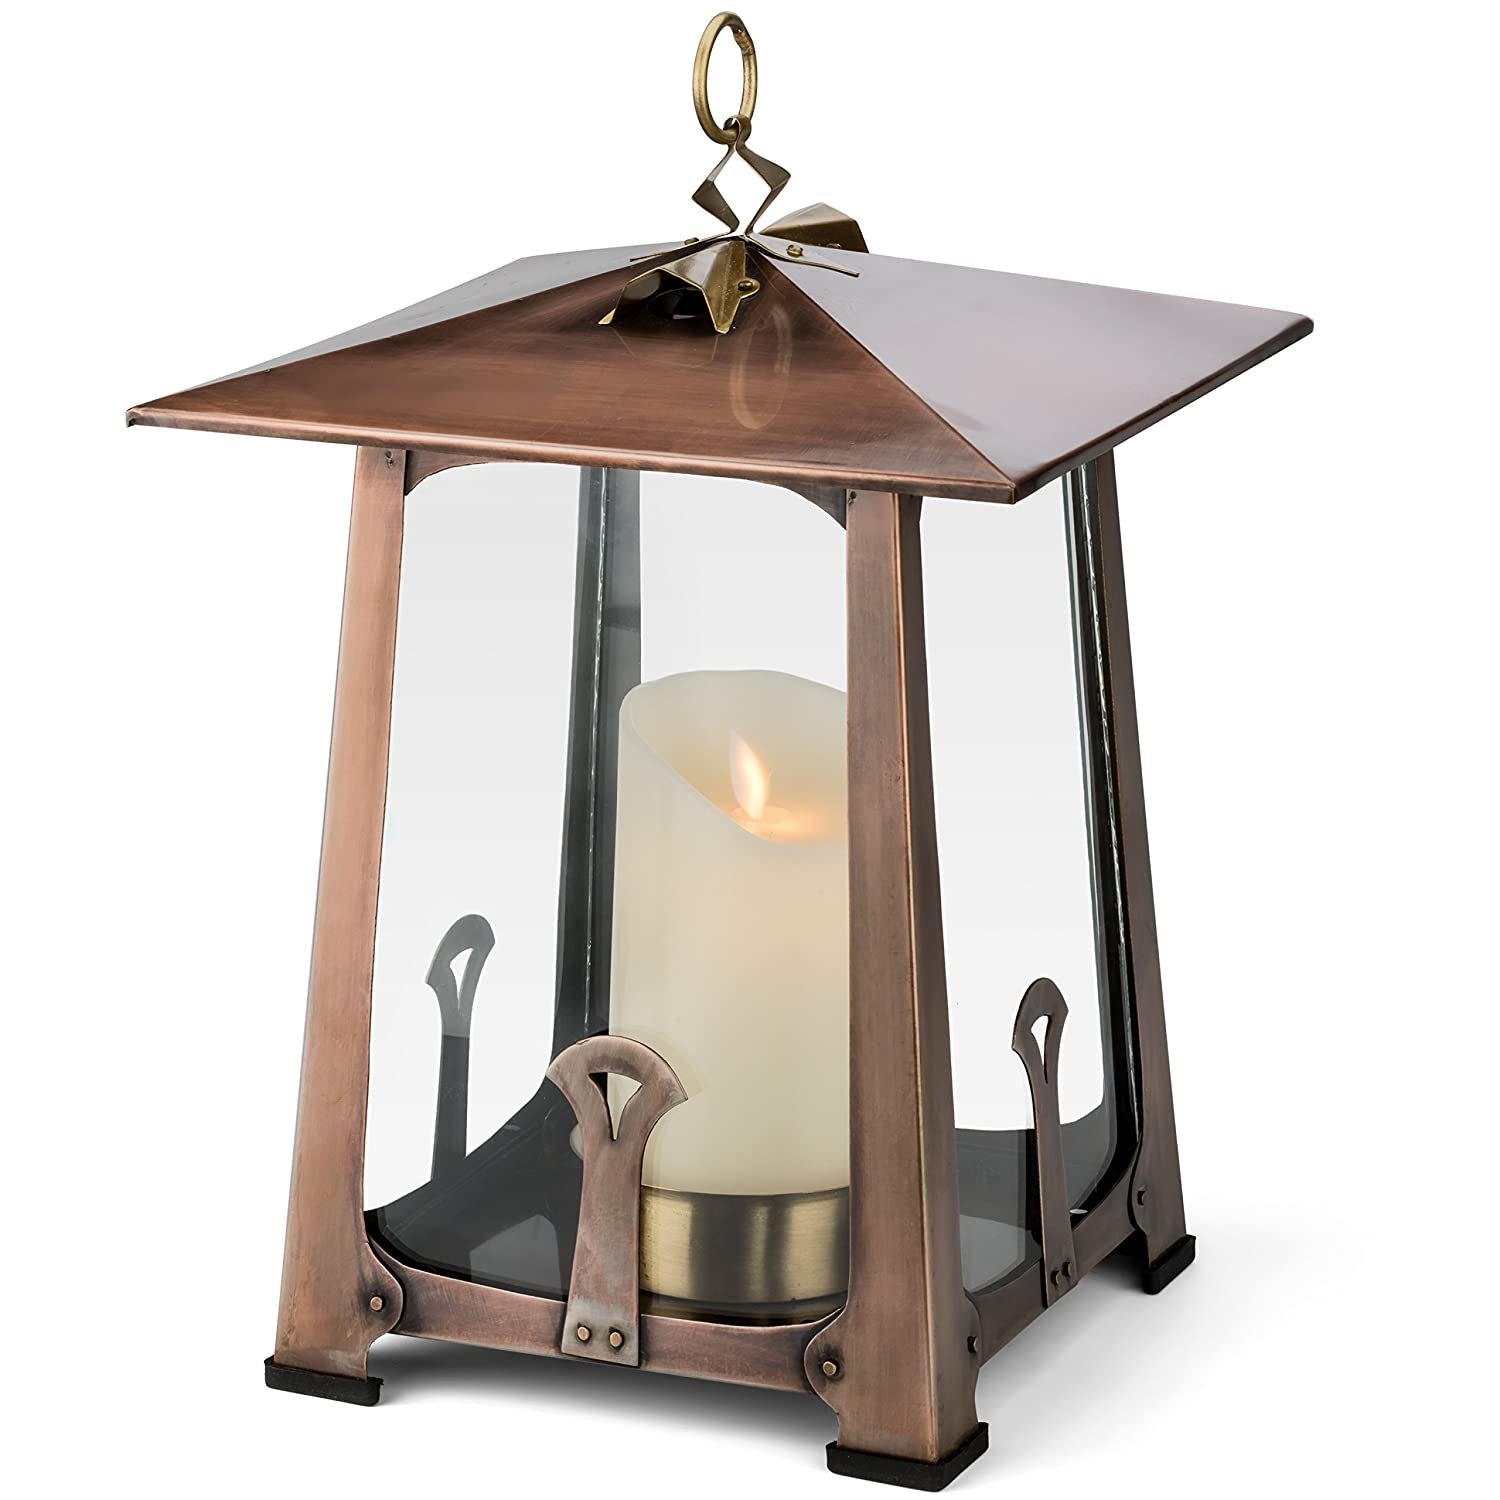 outdoor decor lights flame product for flickering lantern lamp store pathway torch christm hanging garden waterproof solar atmosphere led decorative deck